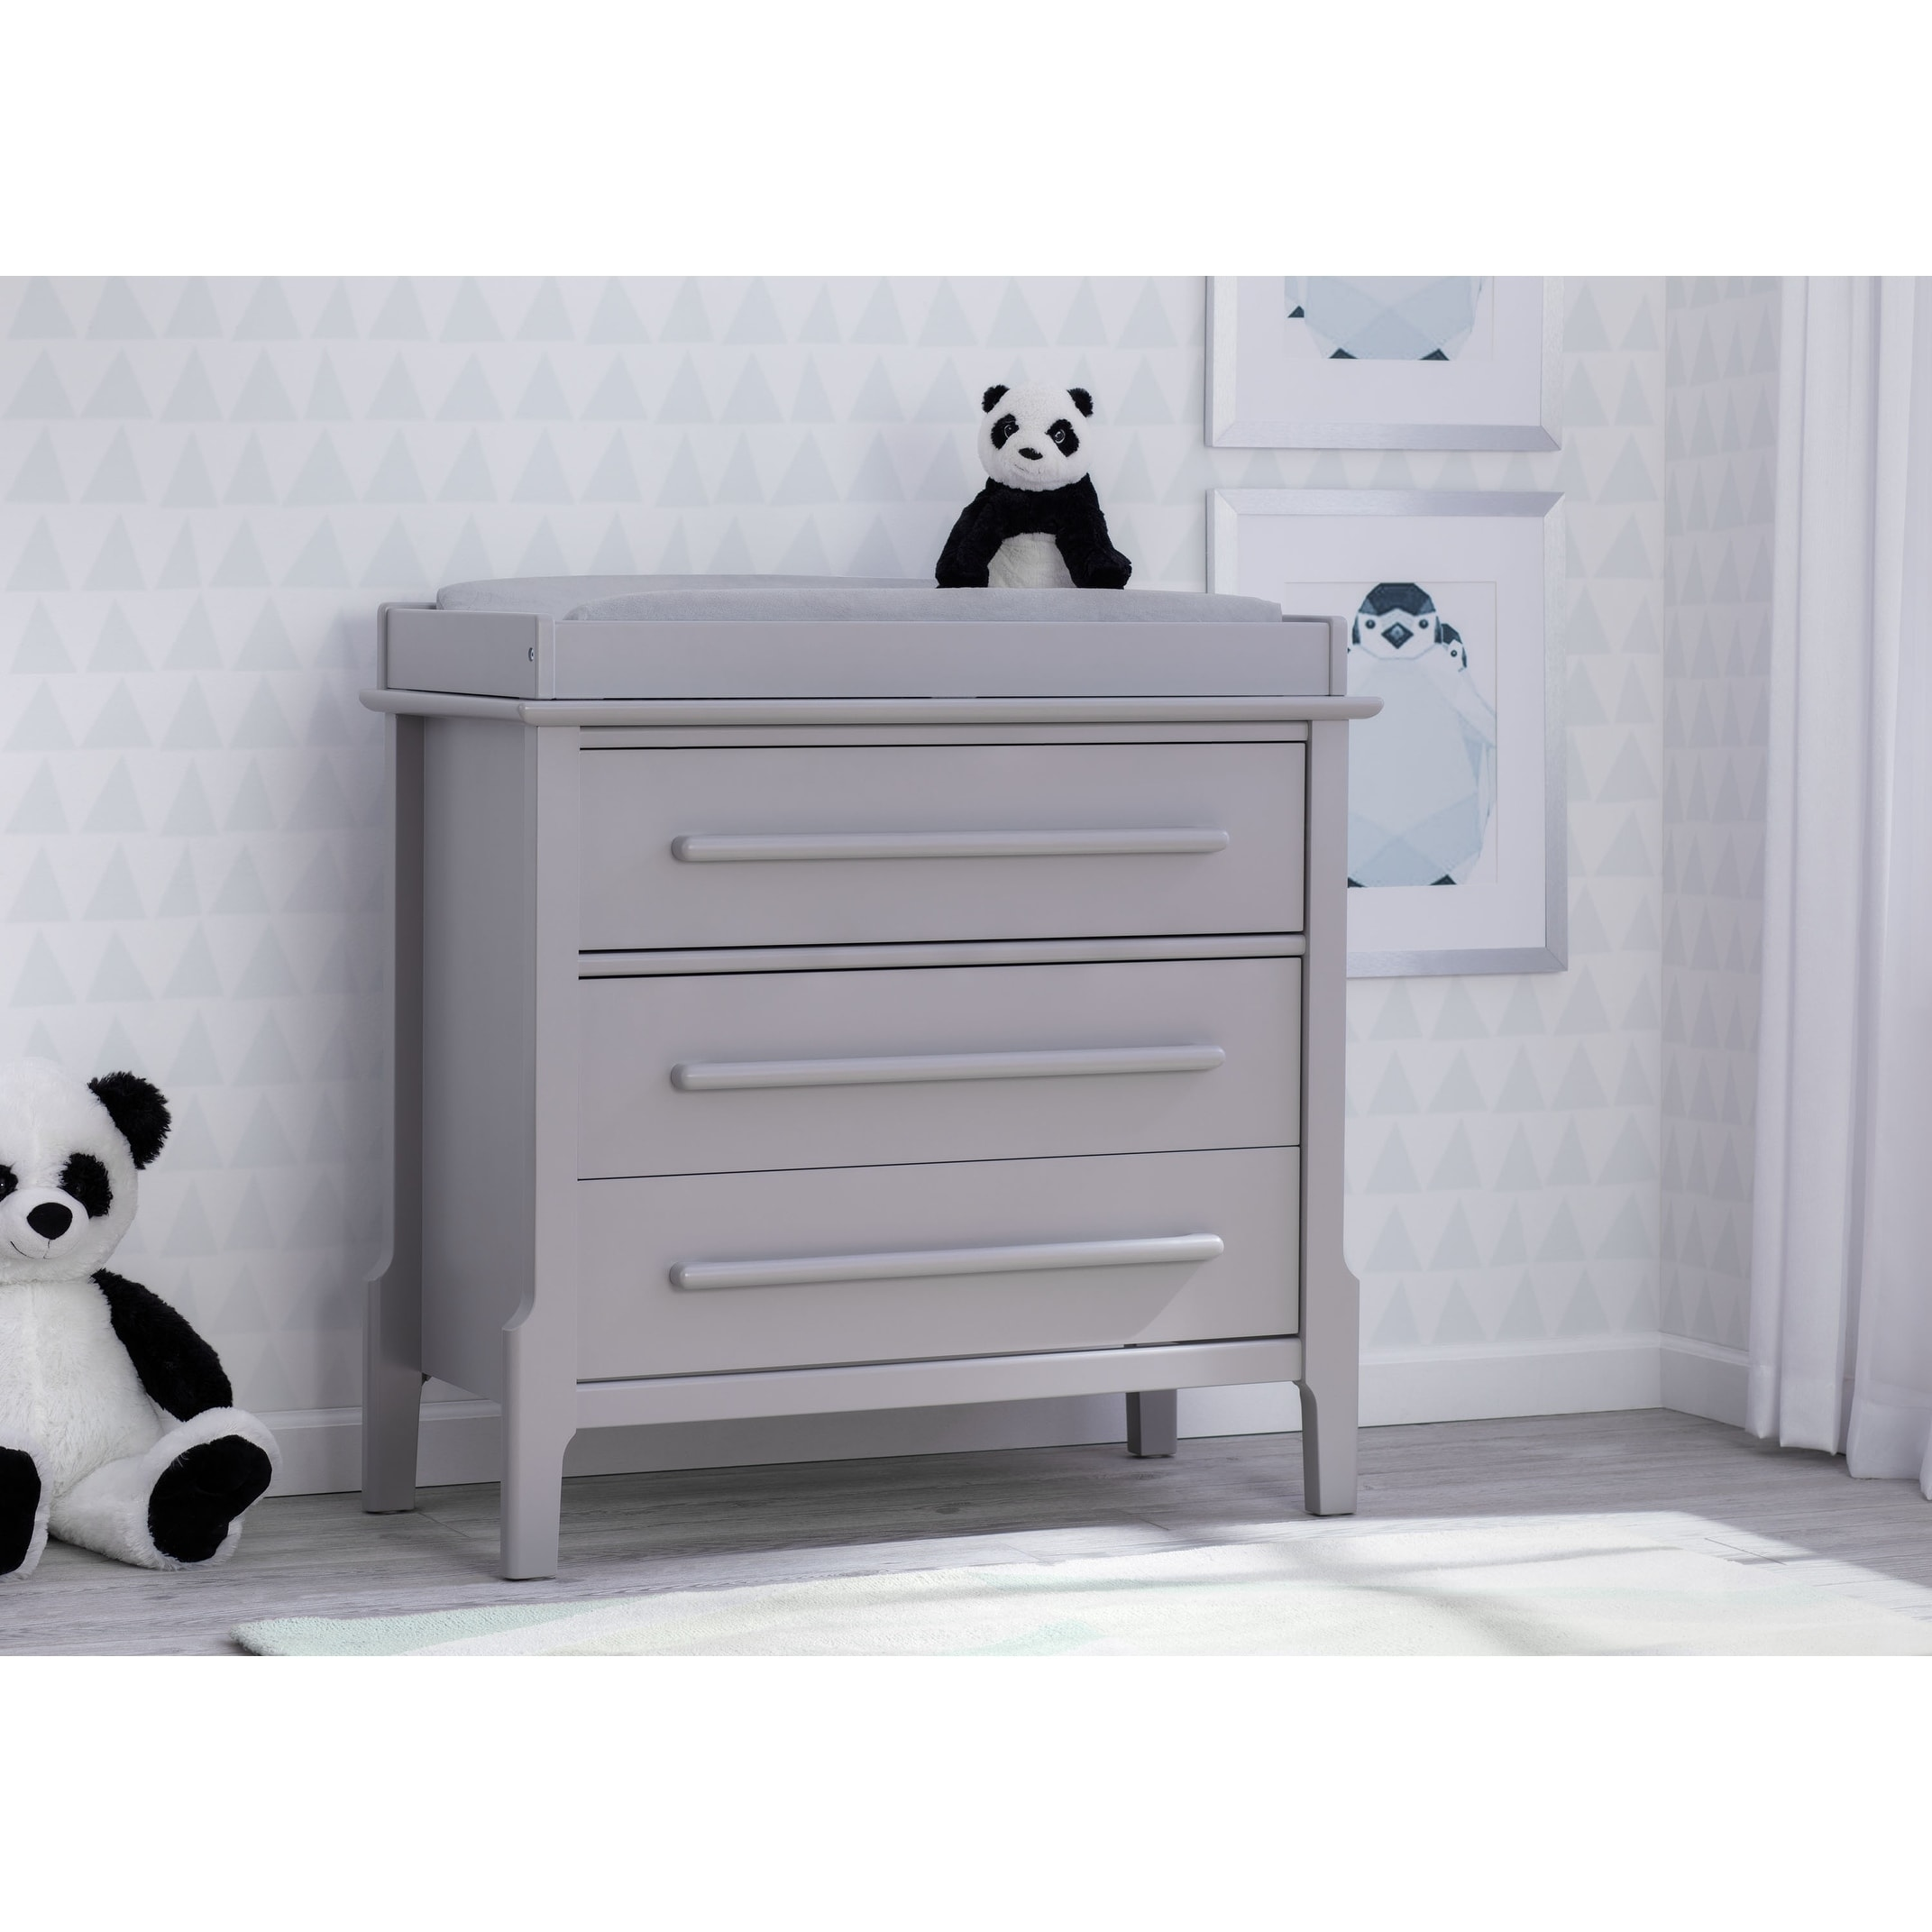 your awesome changing portable com table ideas folding for baby nursery design bedroom grey furniture drawer with dresser topper carolinacouture